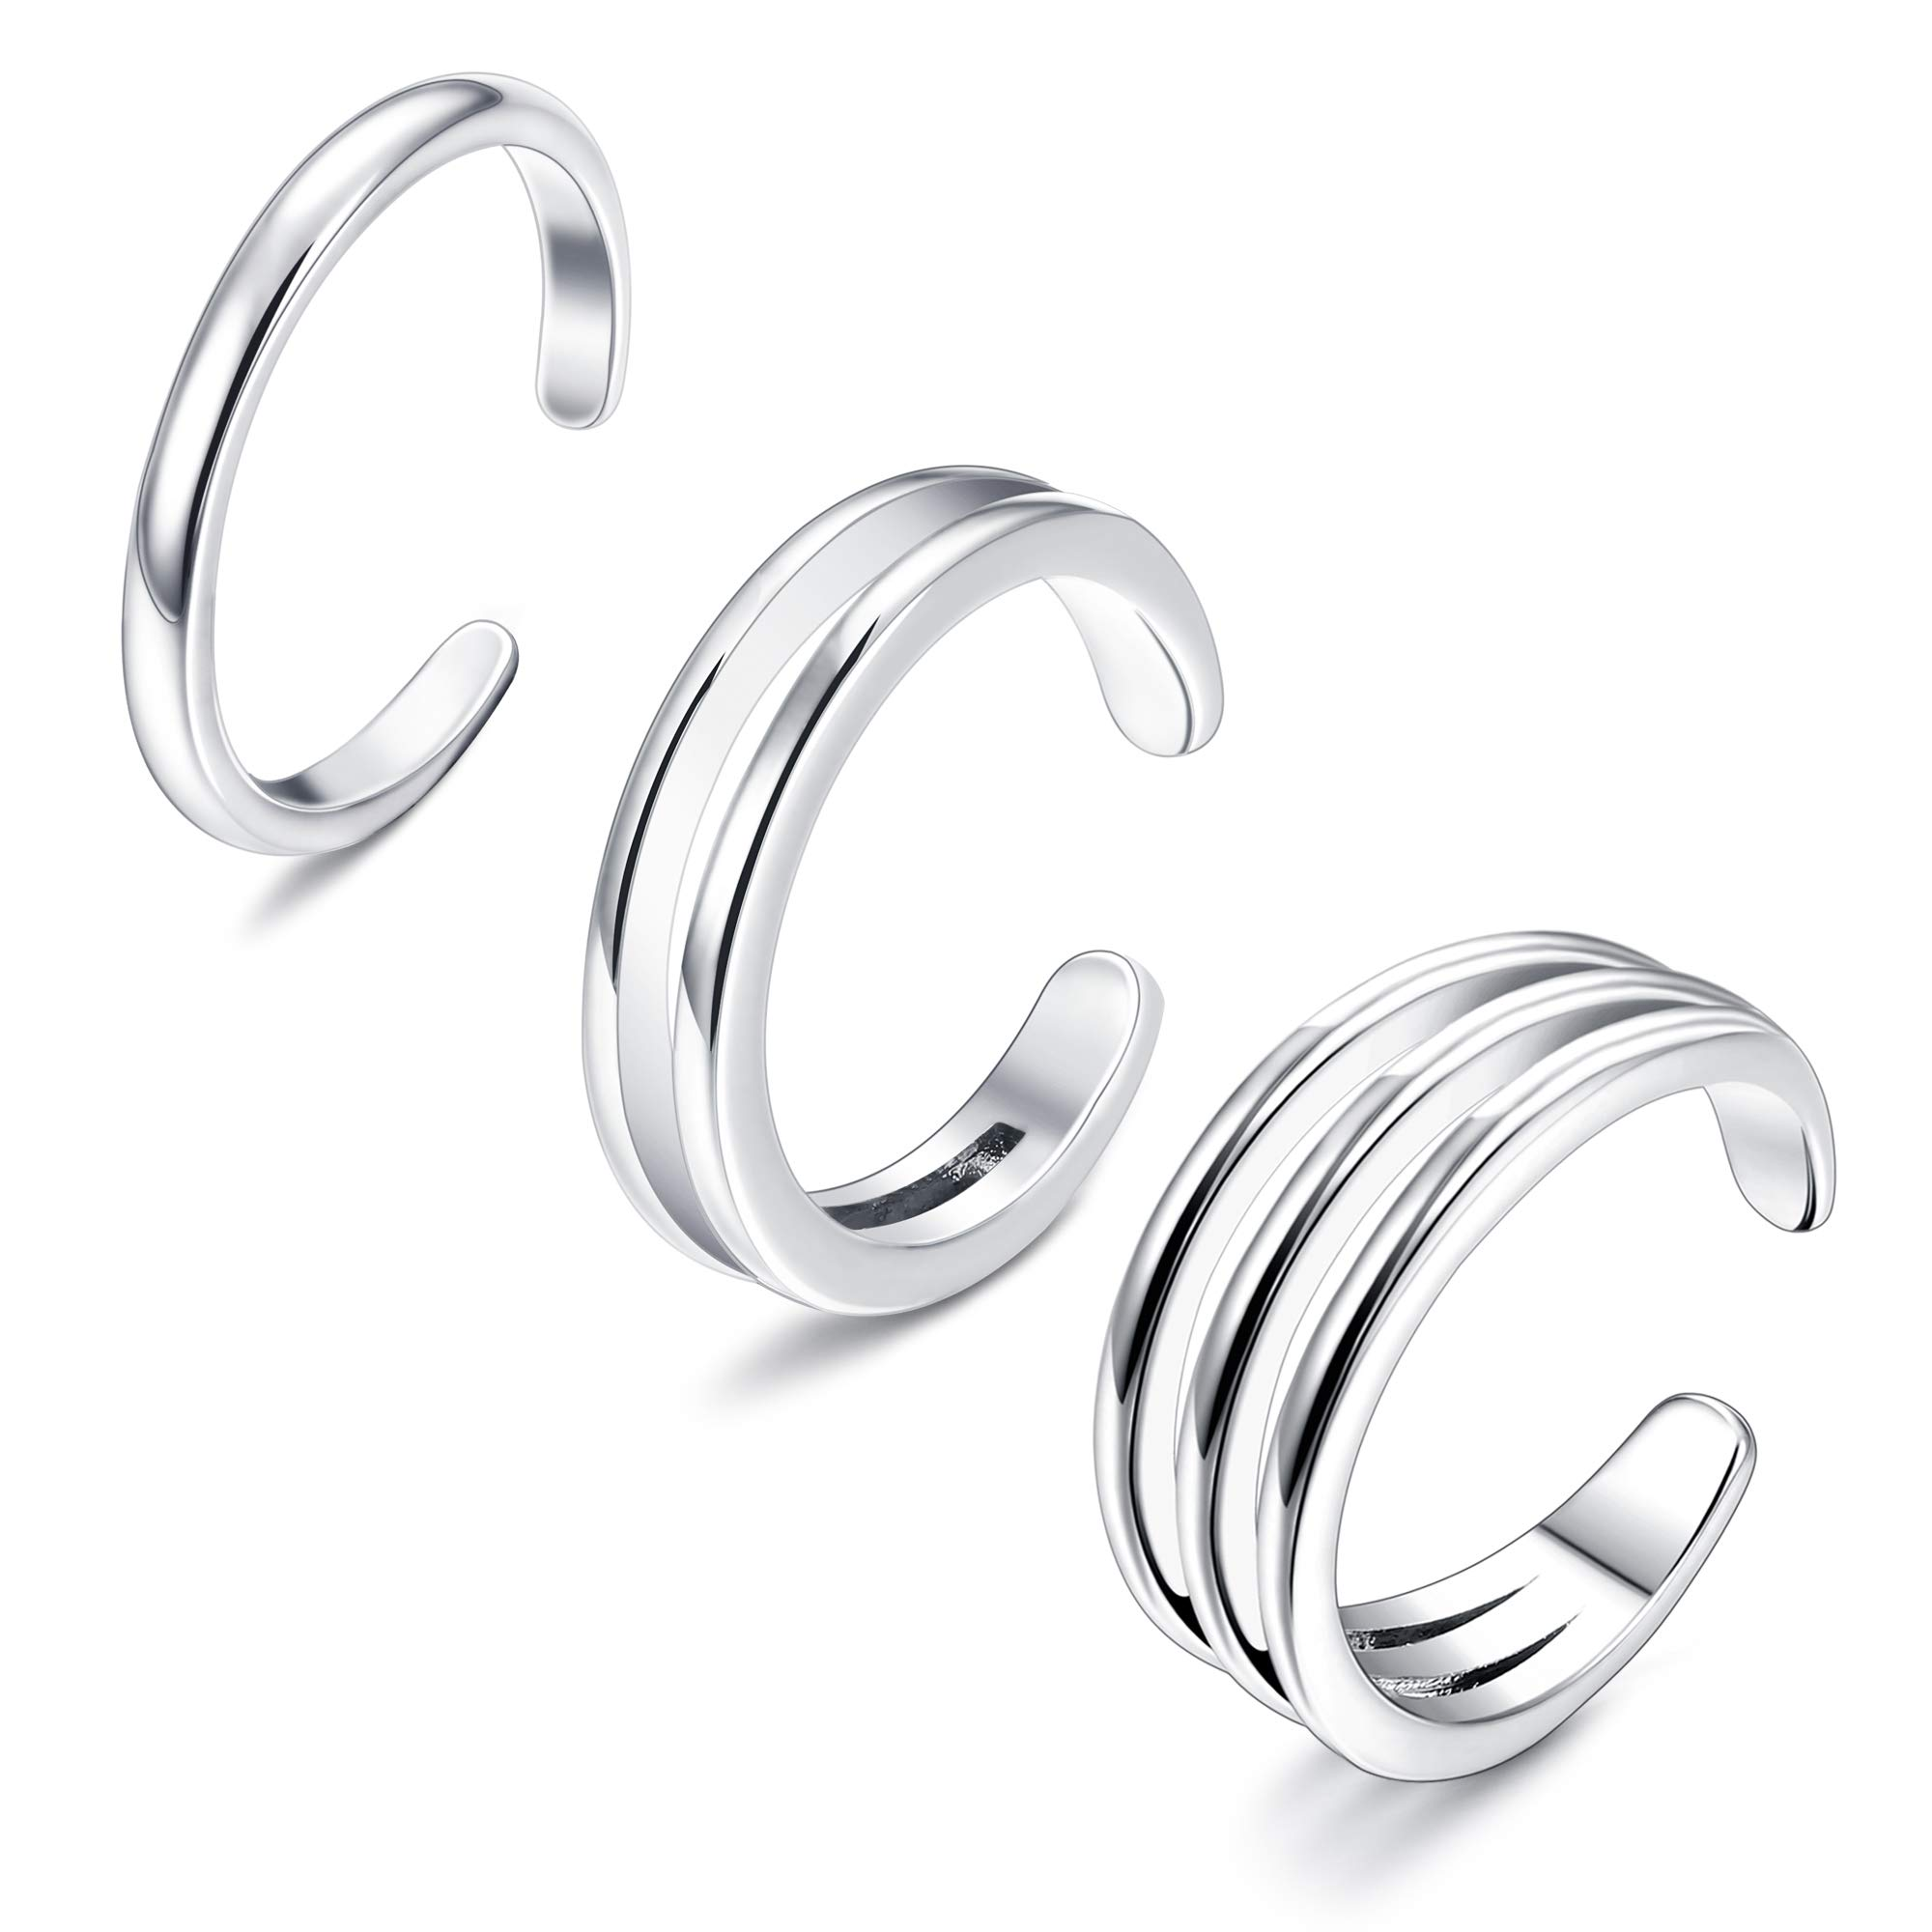 Sllaiss 925 Sterling Silver Minimalist Toe Rings Set Simple Open Thin Band Ring Adjustable for Women Girls by Sllaiss